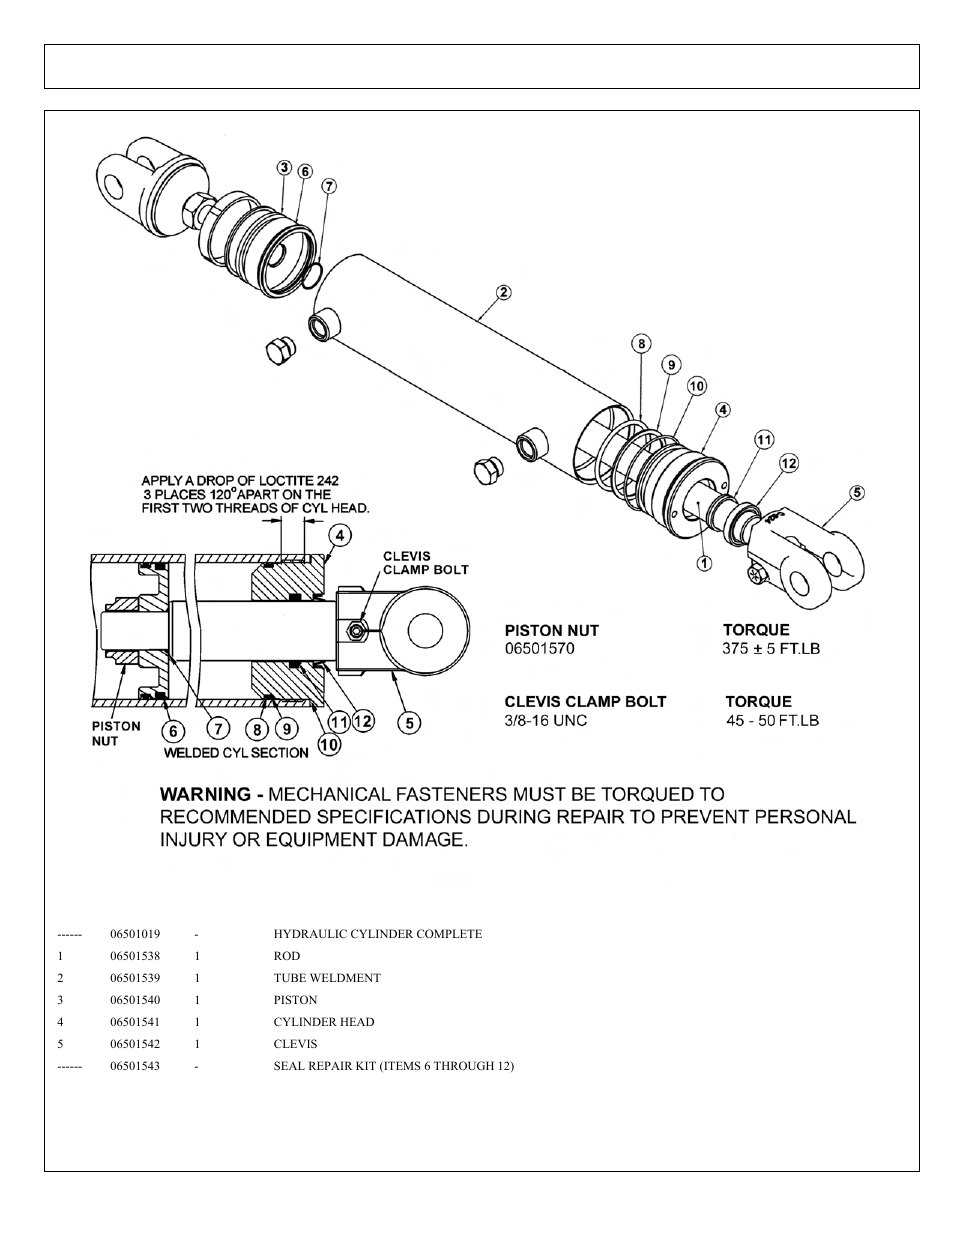 4in x 9in welded cylinder breakdown   Tiger Products Co